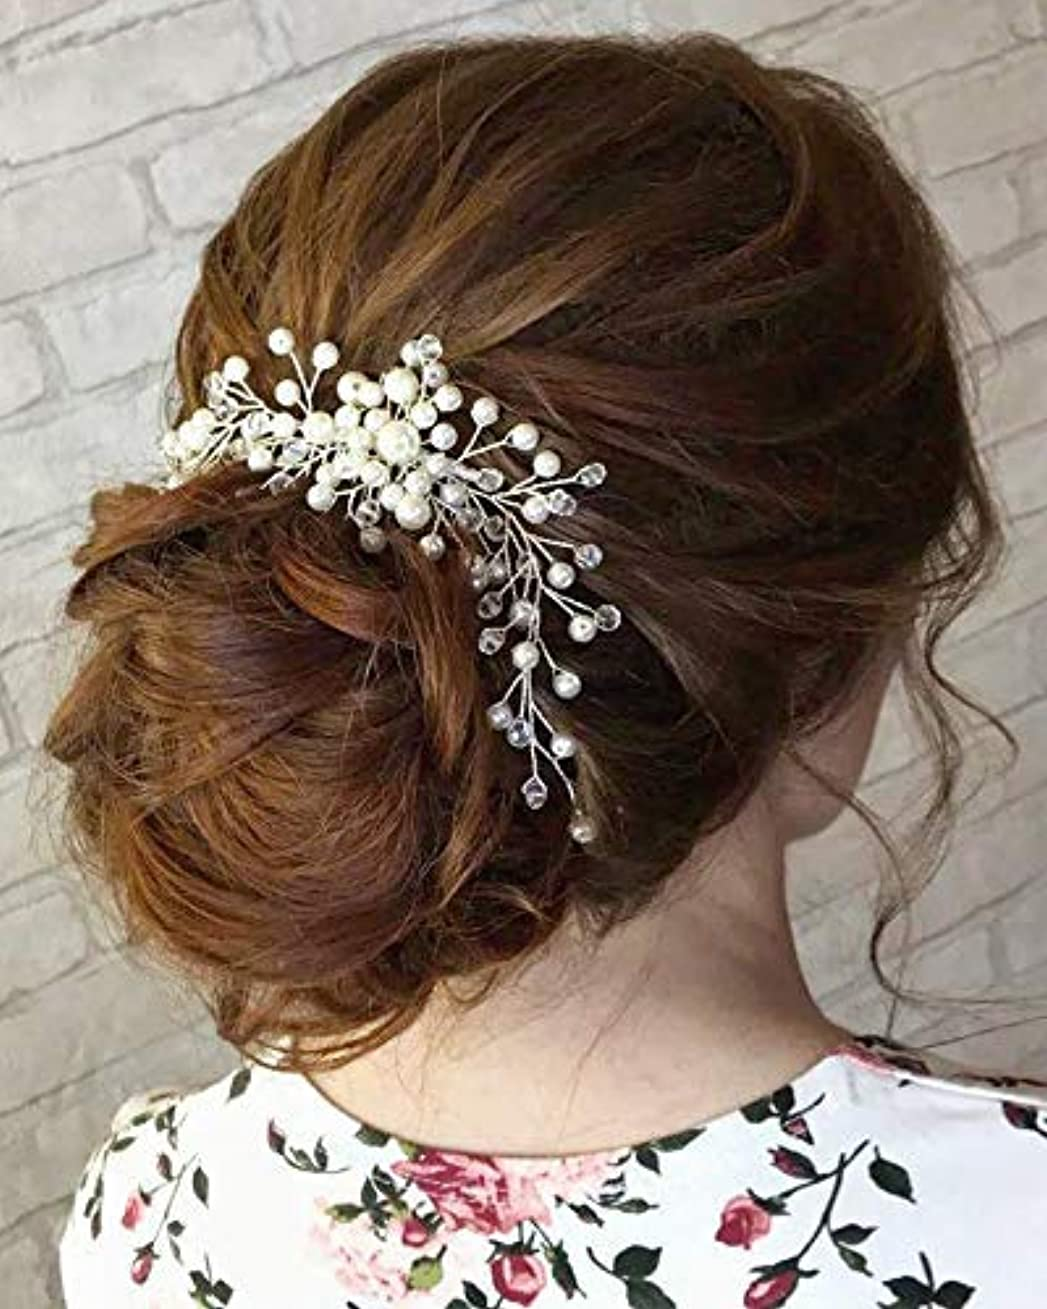 組立推定を必要としていますKercisbeauty Wedding Simple Pearl Hair Comb for Brides Bridal Headpiece Long Curly Updo Hair Accessories Prom...